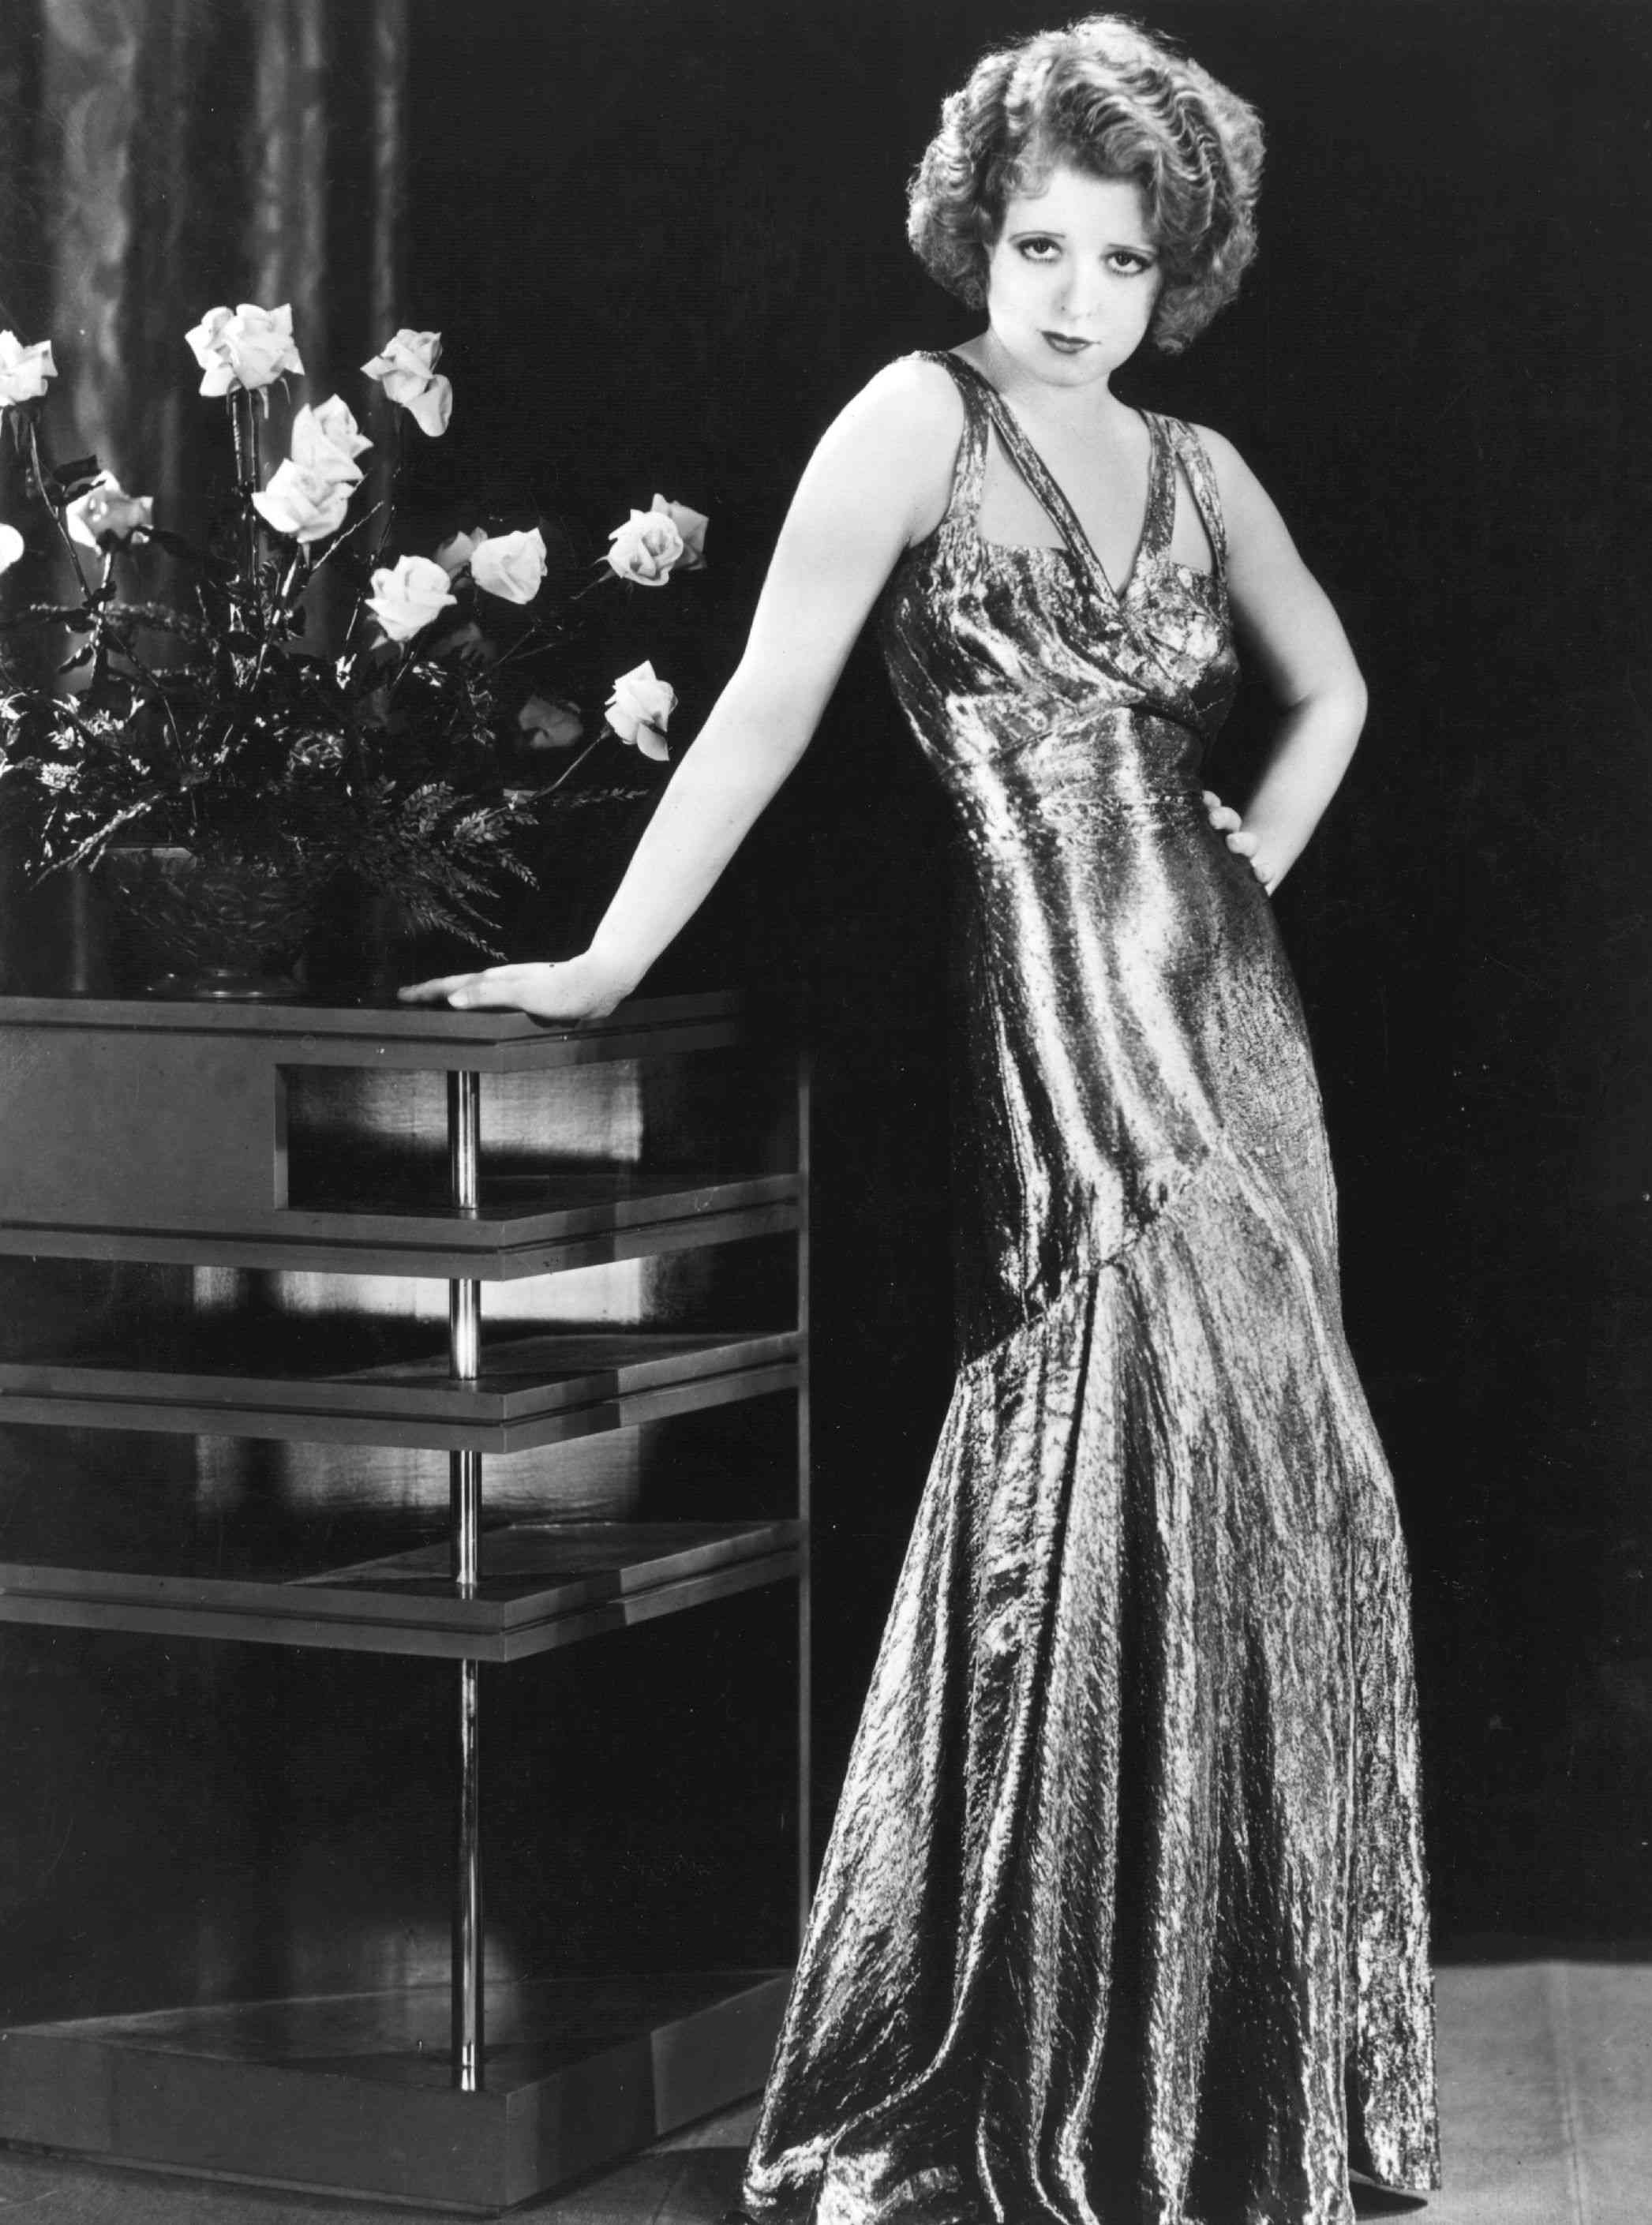 Silent screen siren Clara Bow (1905 - 1965) popularly known as the 'It' girl, wears a silver lame dress for the Paramount film 'No Limit', directed by Frank Tuttle.